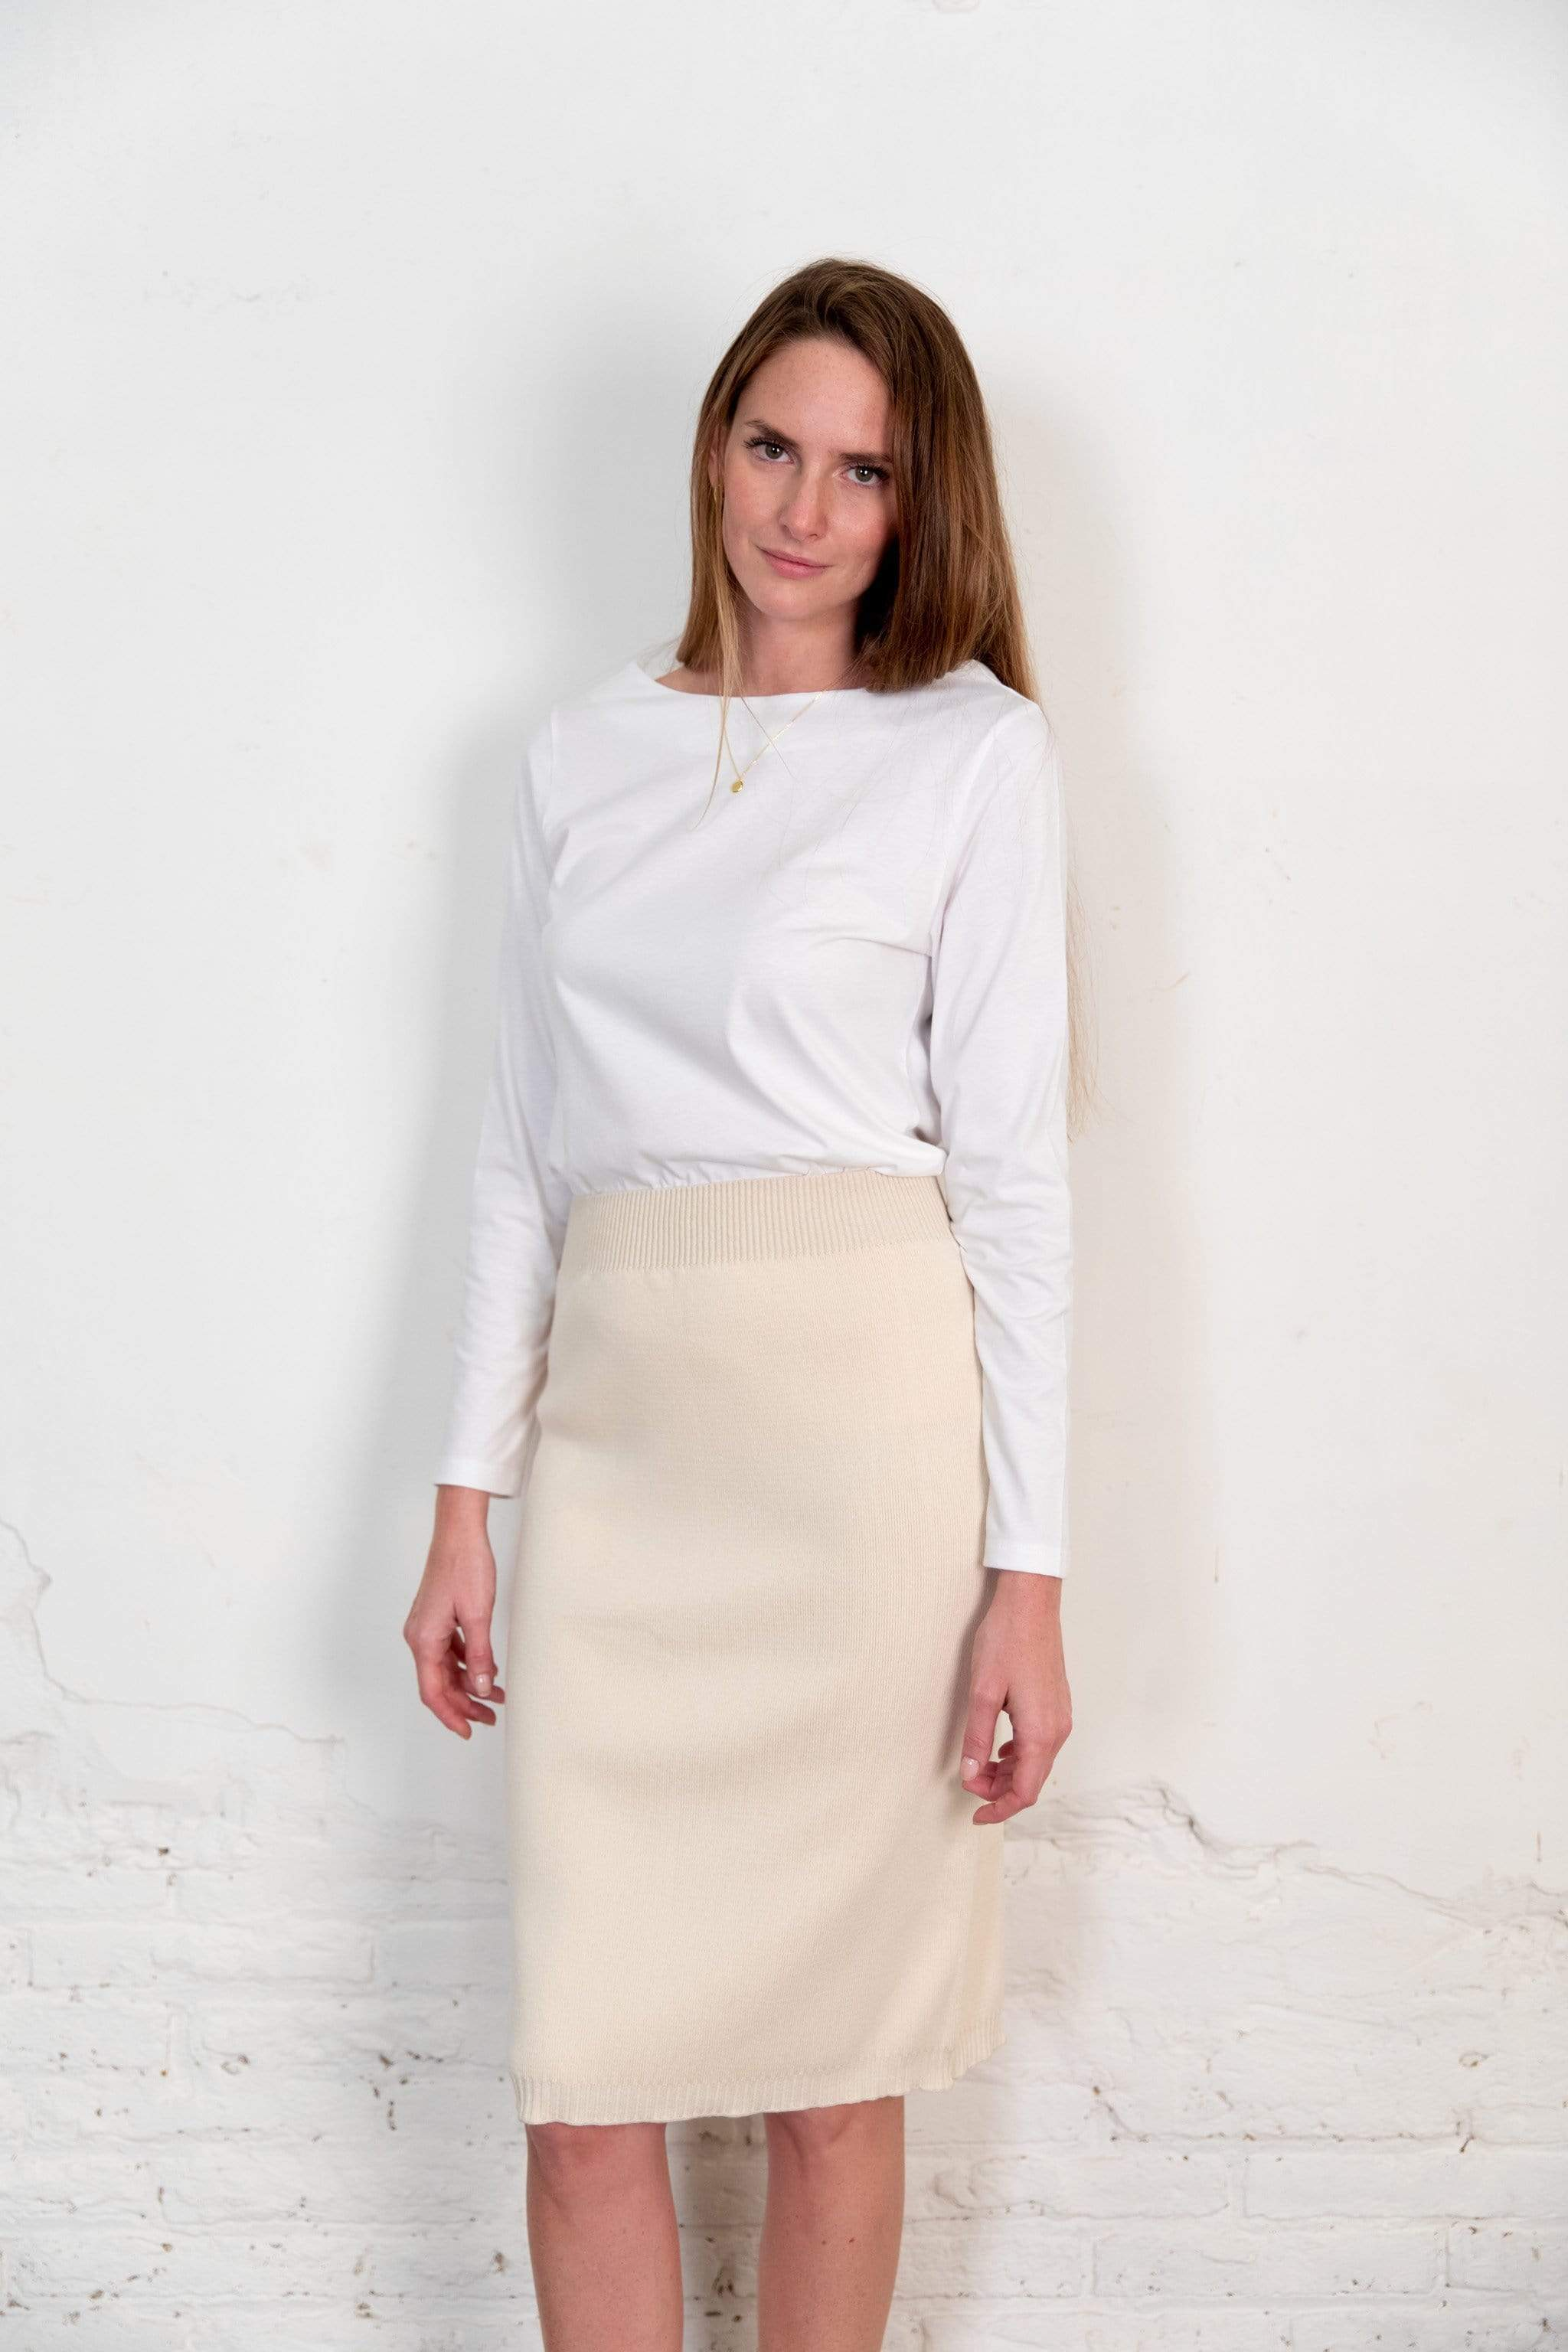 Nordic Leaves skirt Fapun Skirt in Organic Cotton. sustainable fashion ethical fashion